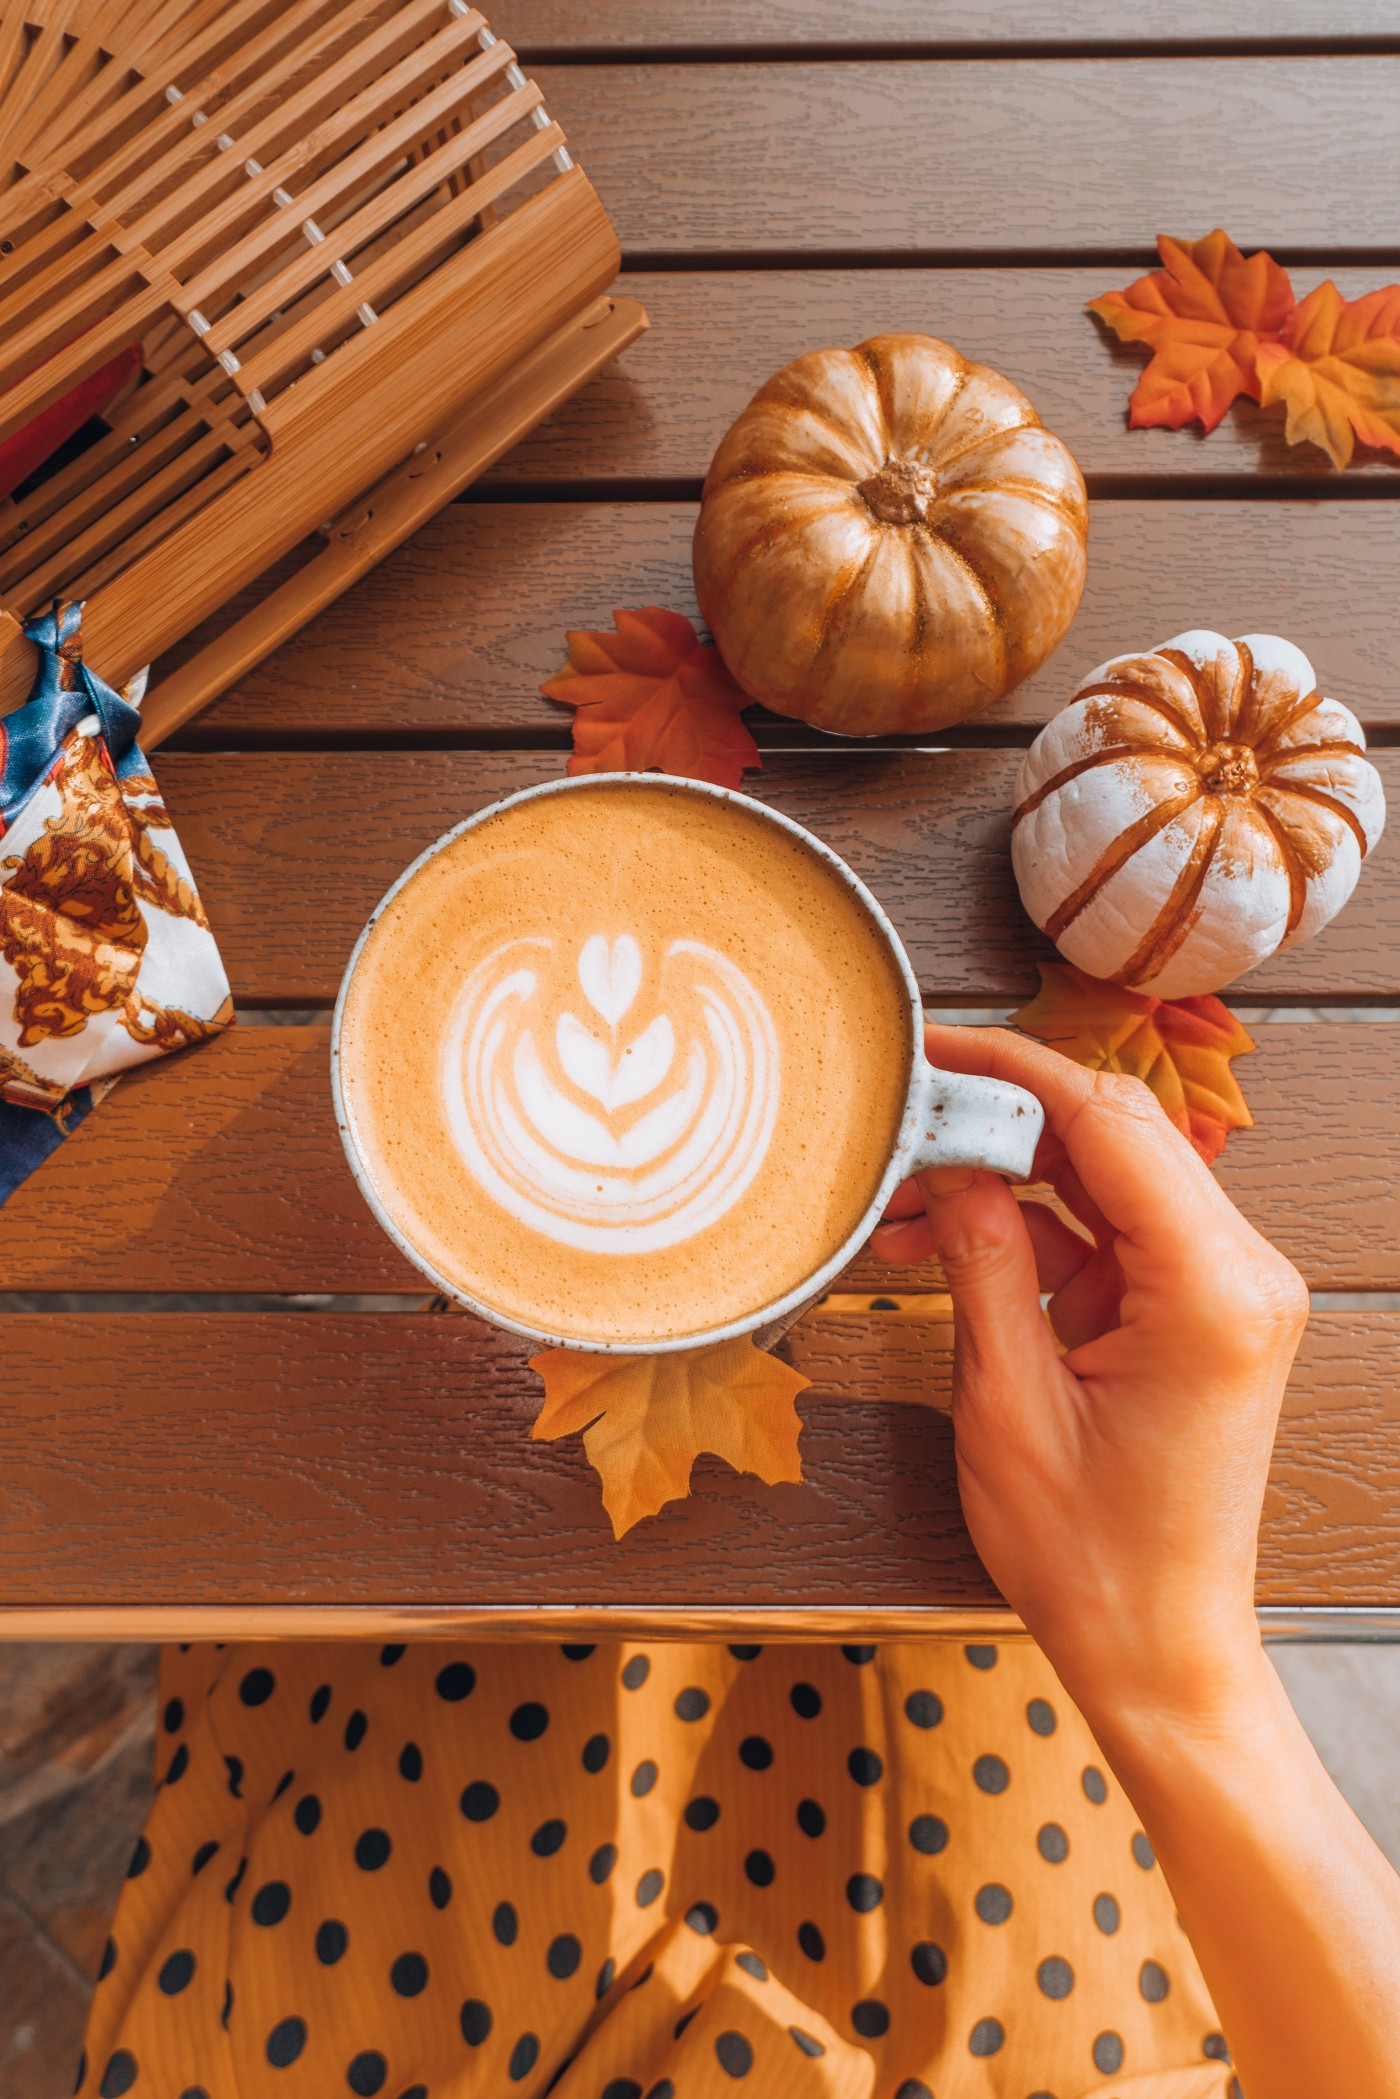 A pumpkin spice latte surrounded by orange leaves and mini pumpkins